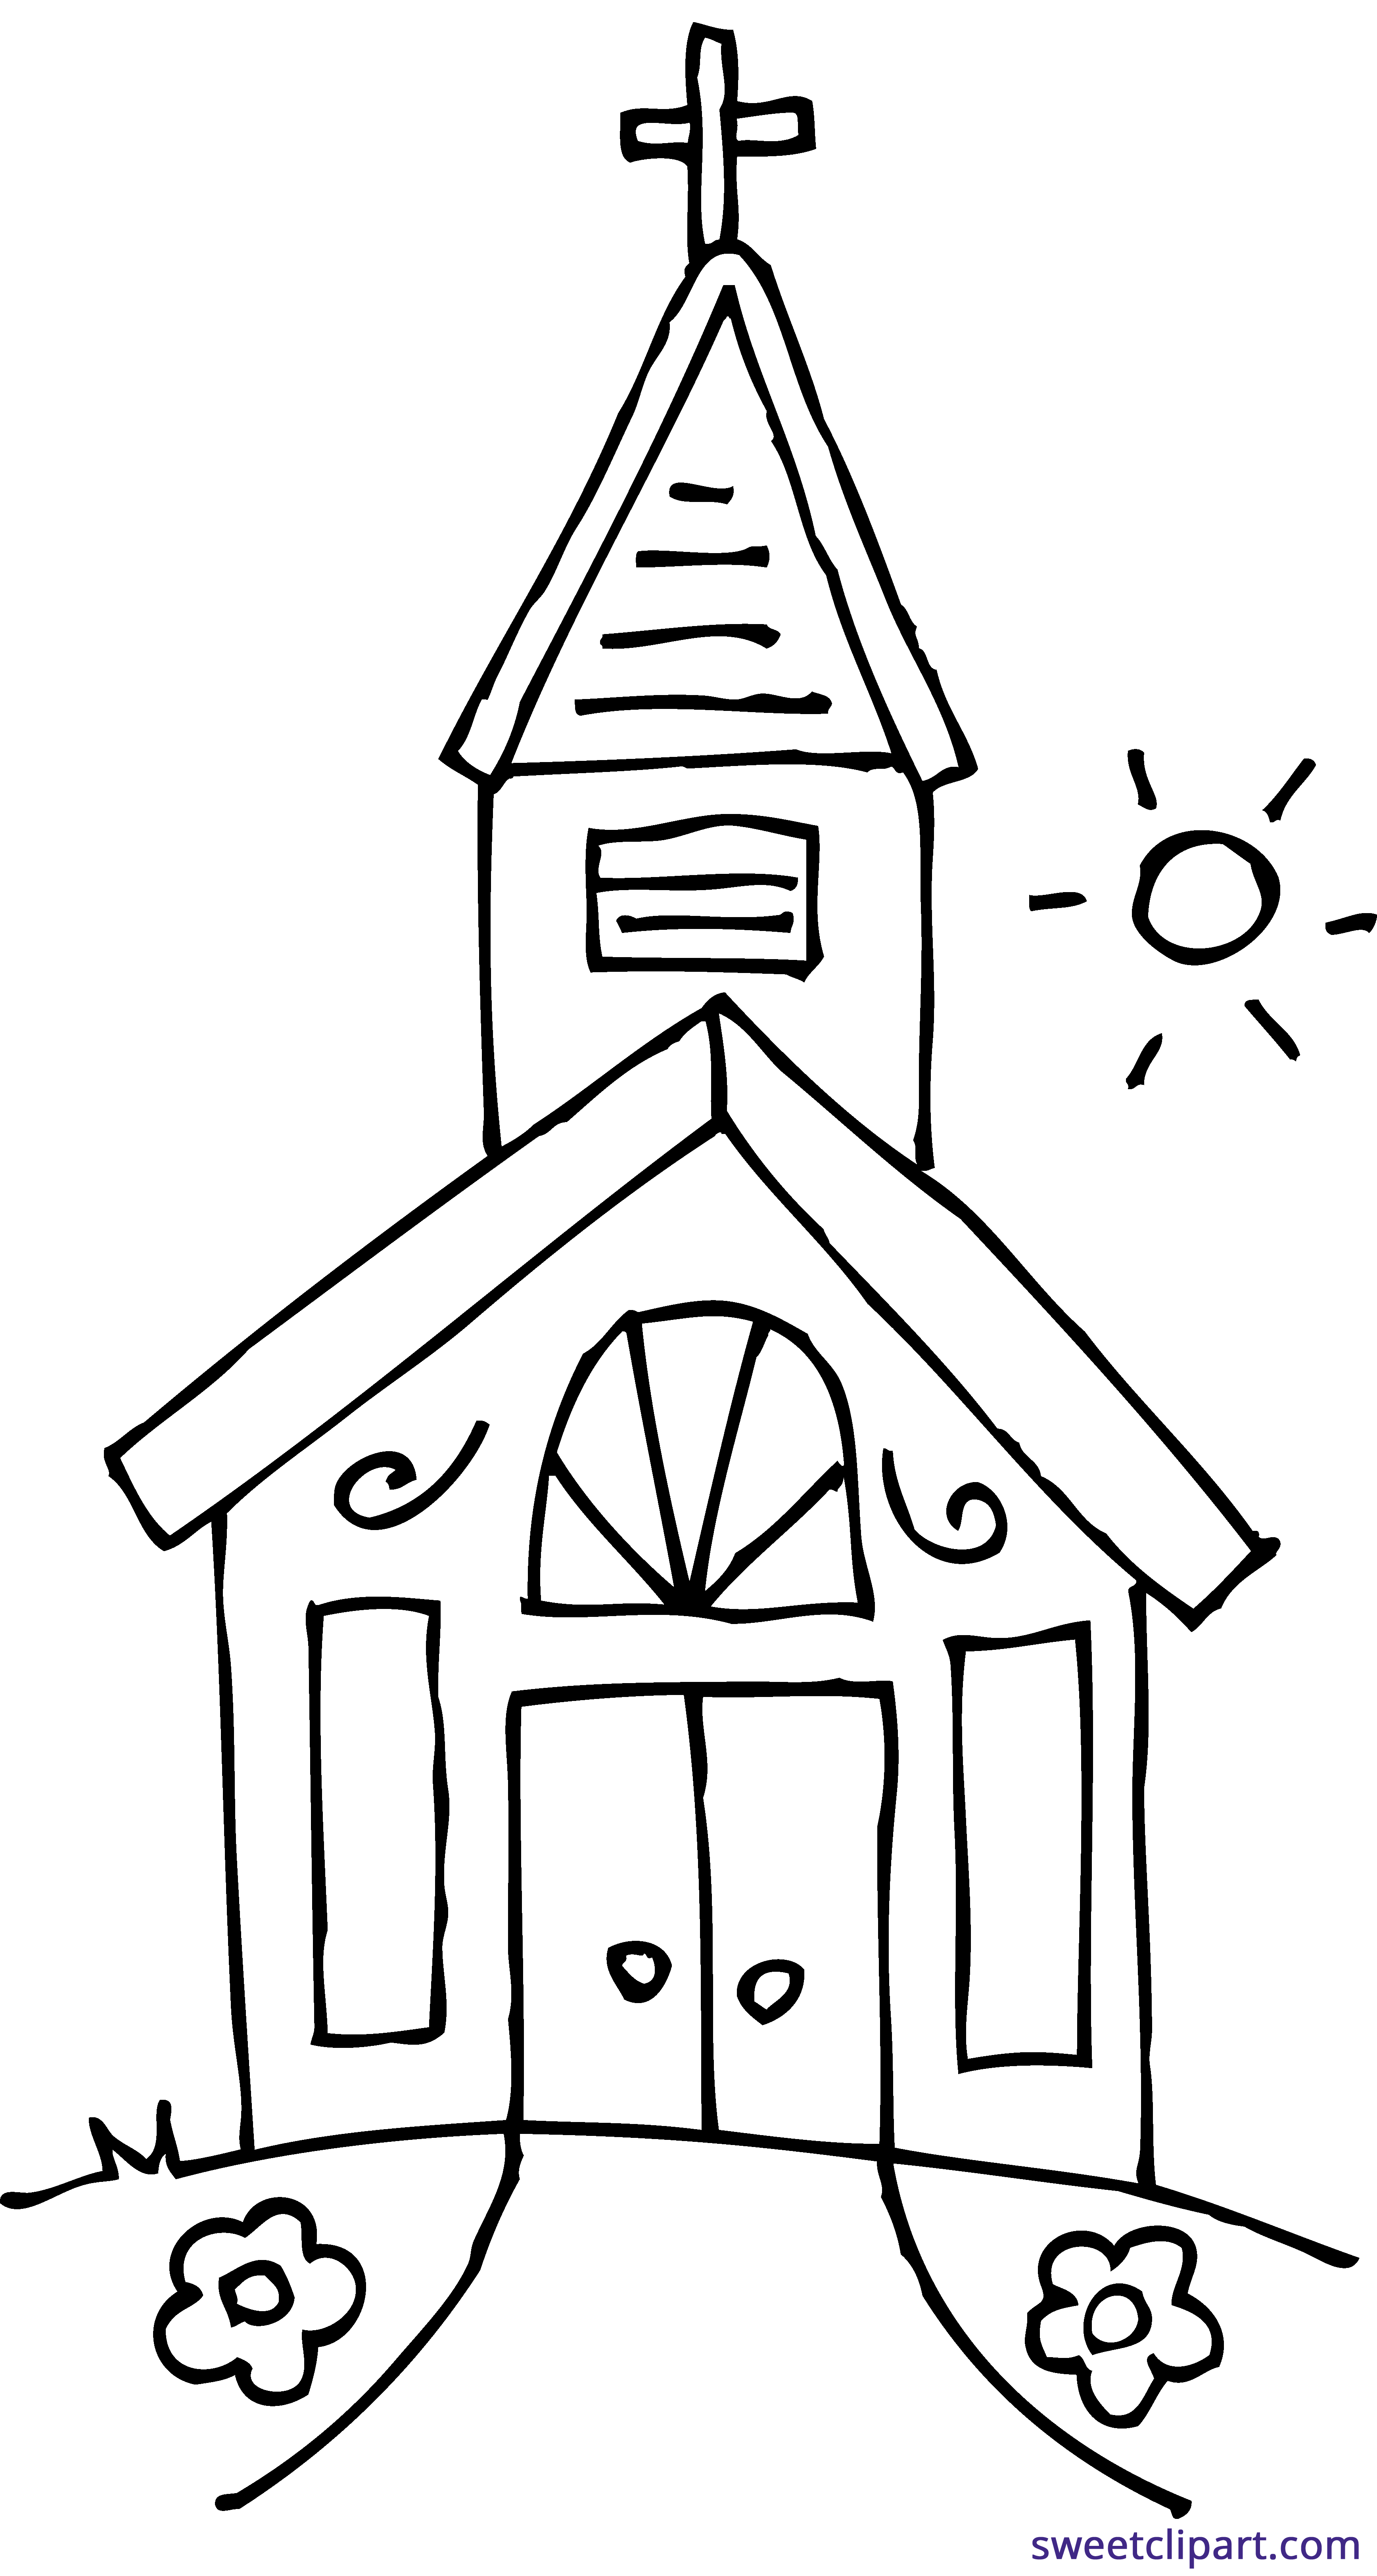 Coloring page sweet clip. Winter clipart church